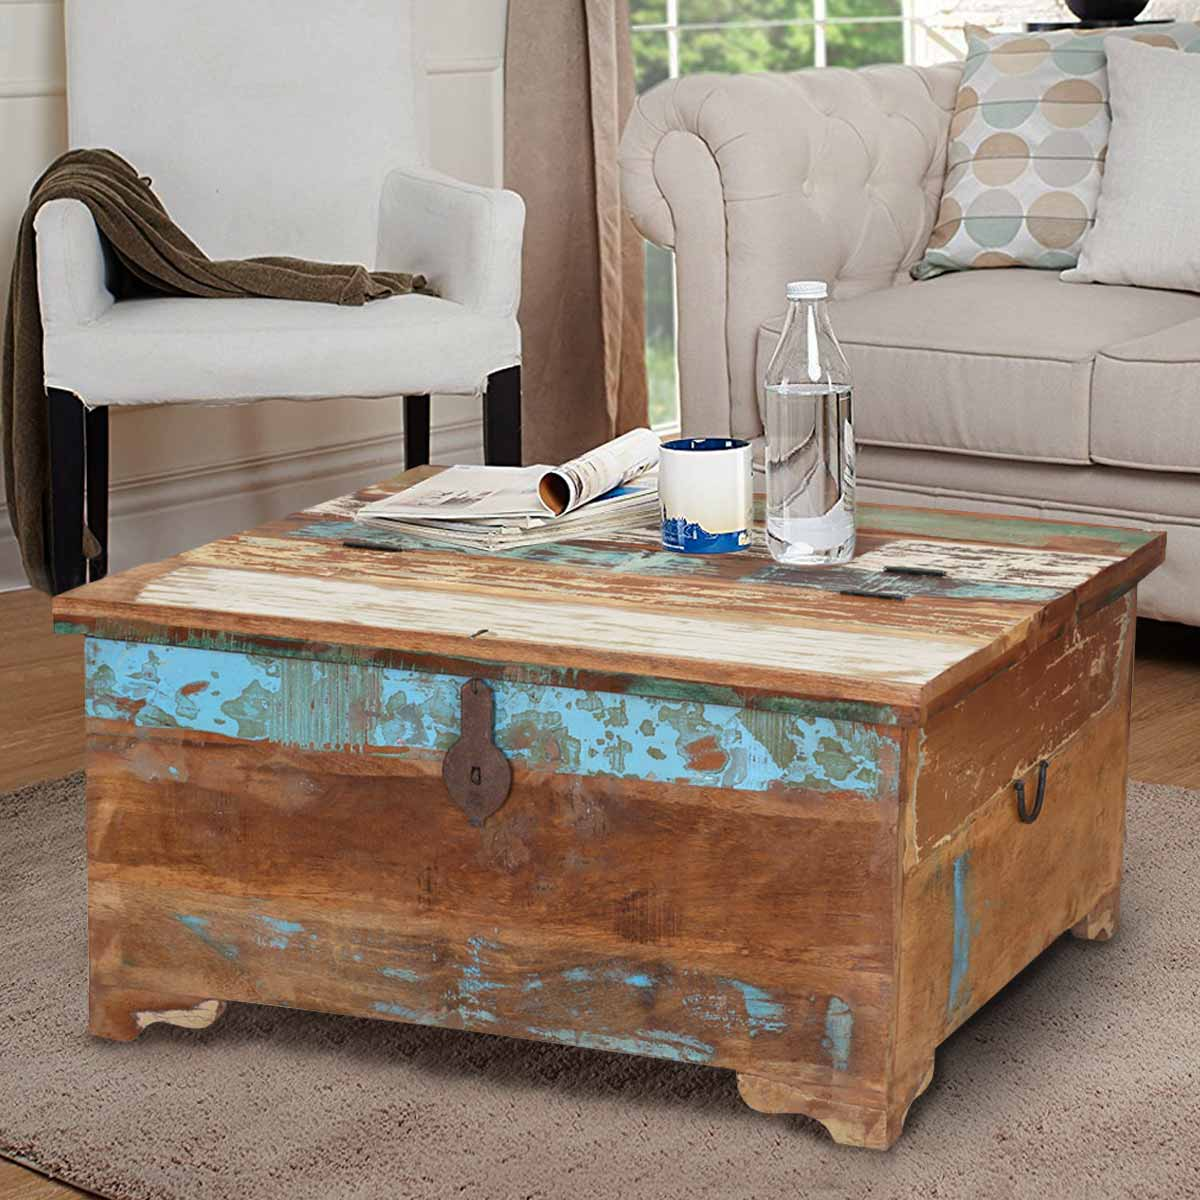 - Rustic Reclaimed Wood Coffee Table Storage Trunk